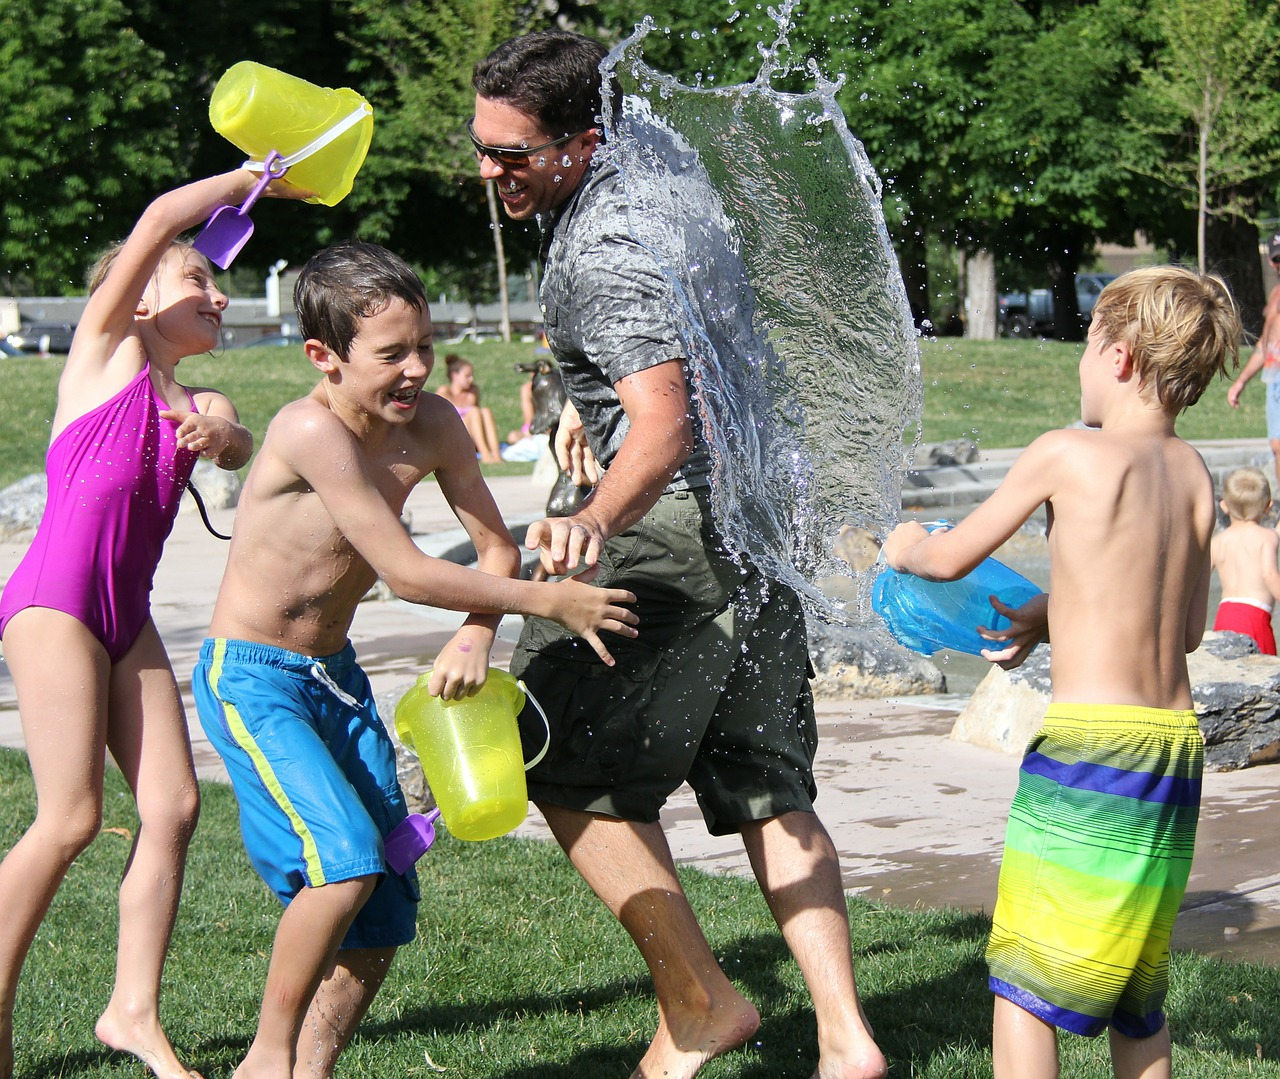 Summer Fun with Attention Deficit Disorder